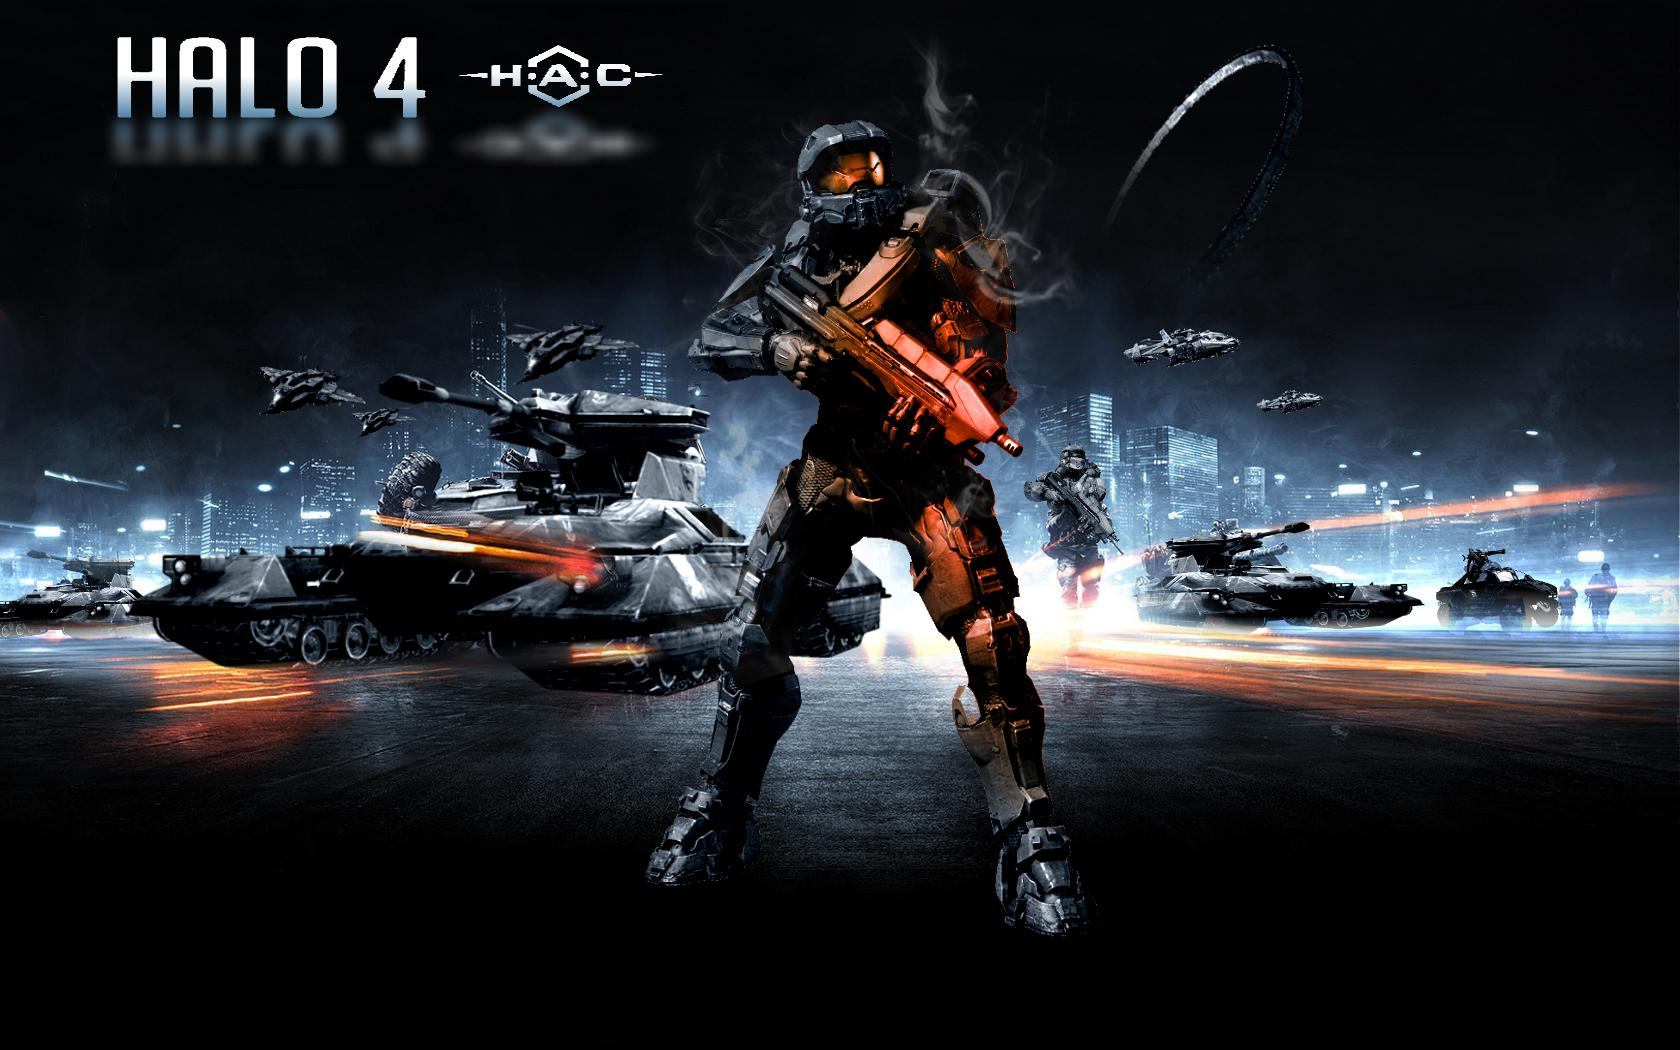 halo 4 wallpaper halo 4 wallpaper 1680x1050